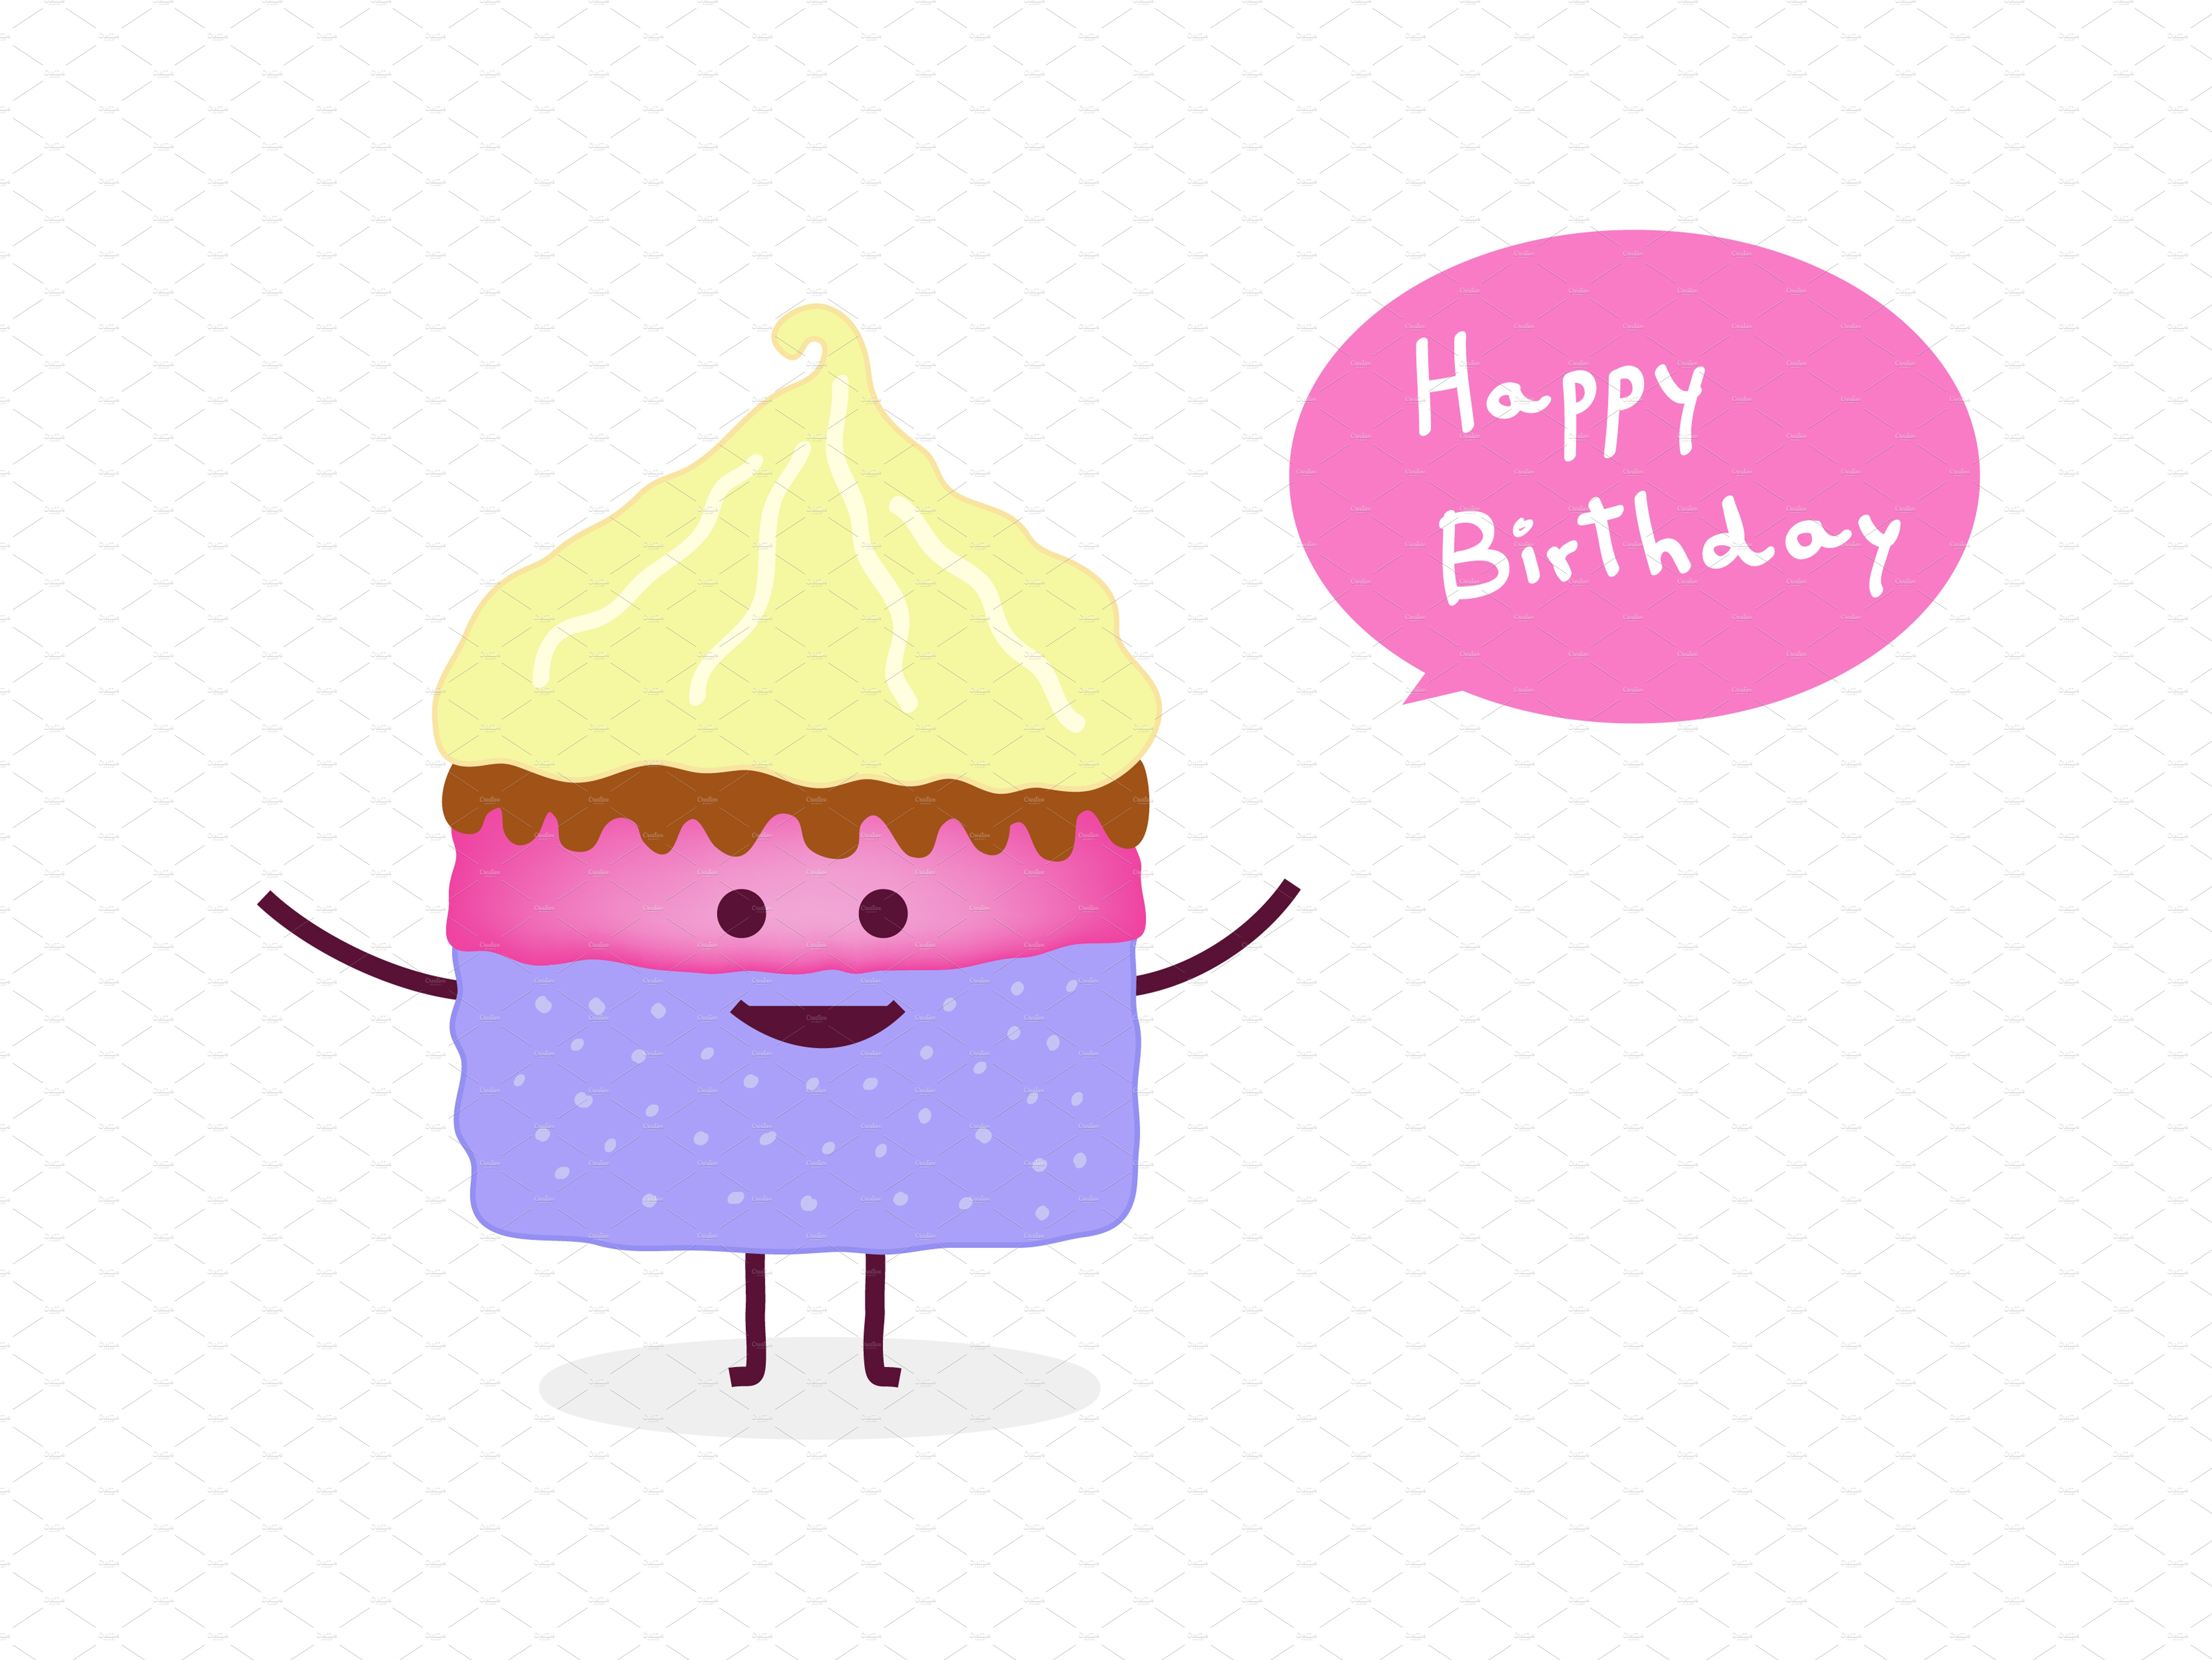 Happy birthday cake ~ Illustrations ~ Creative Market